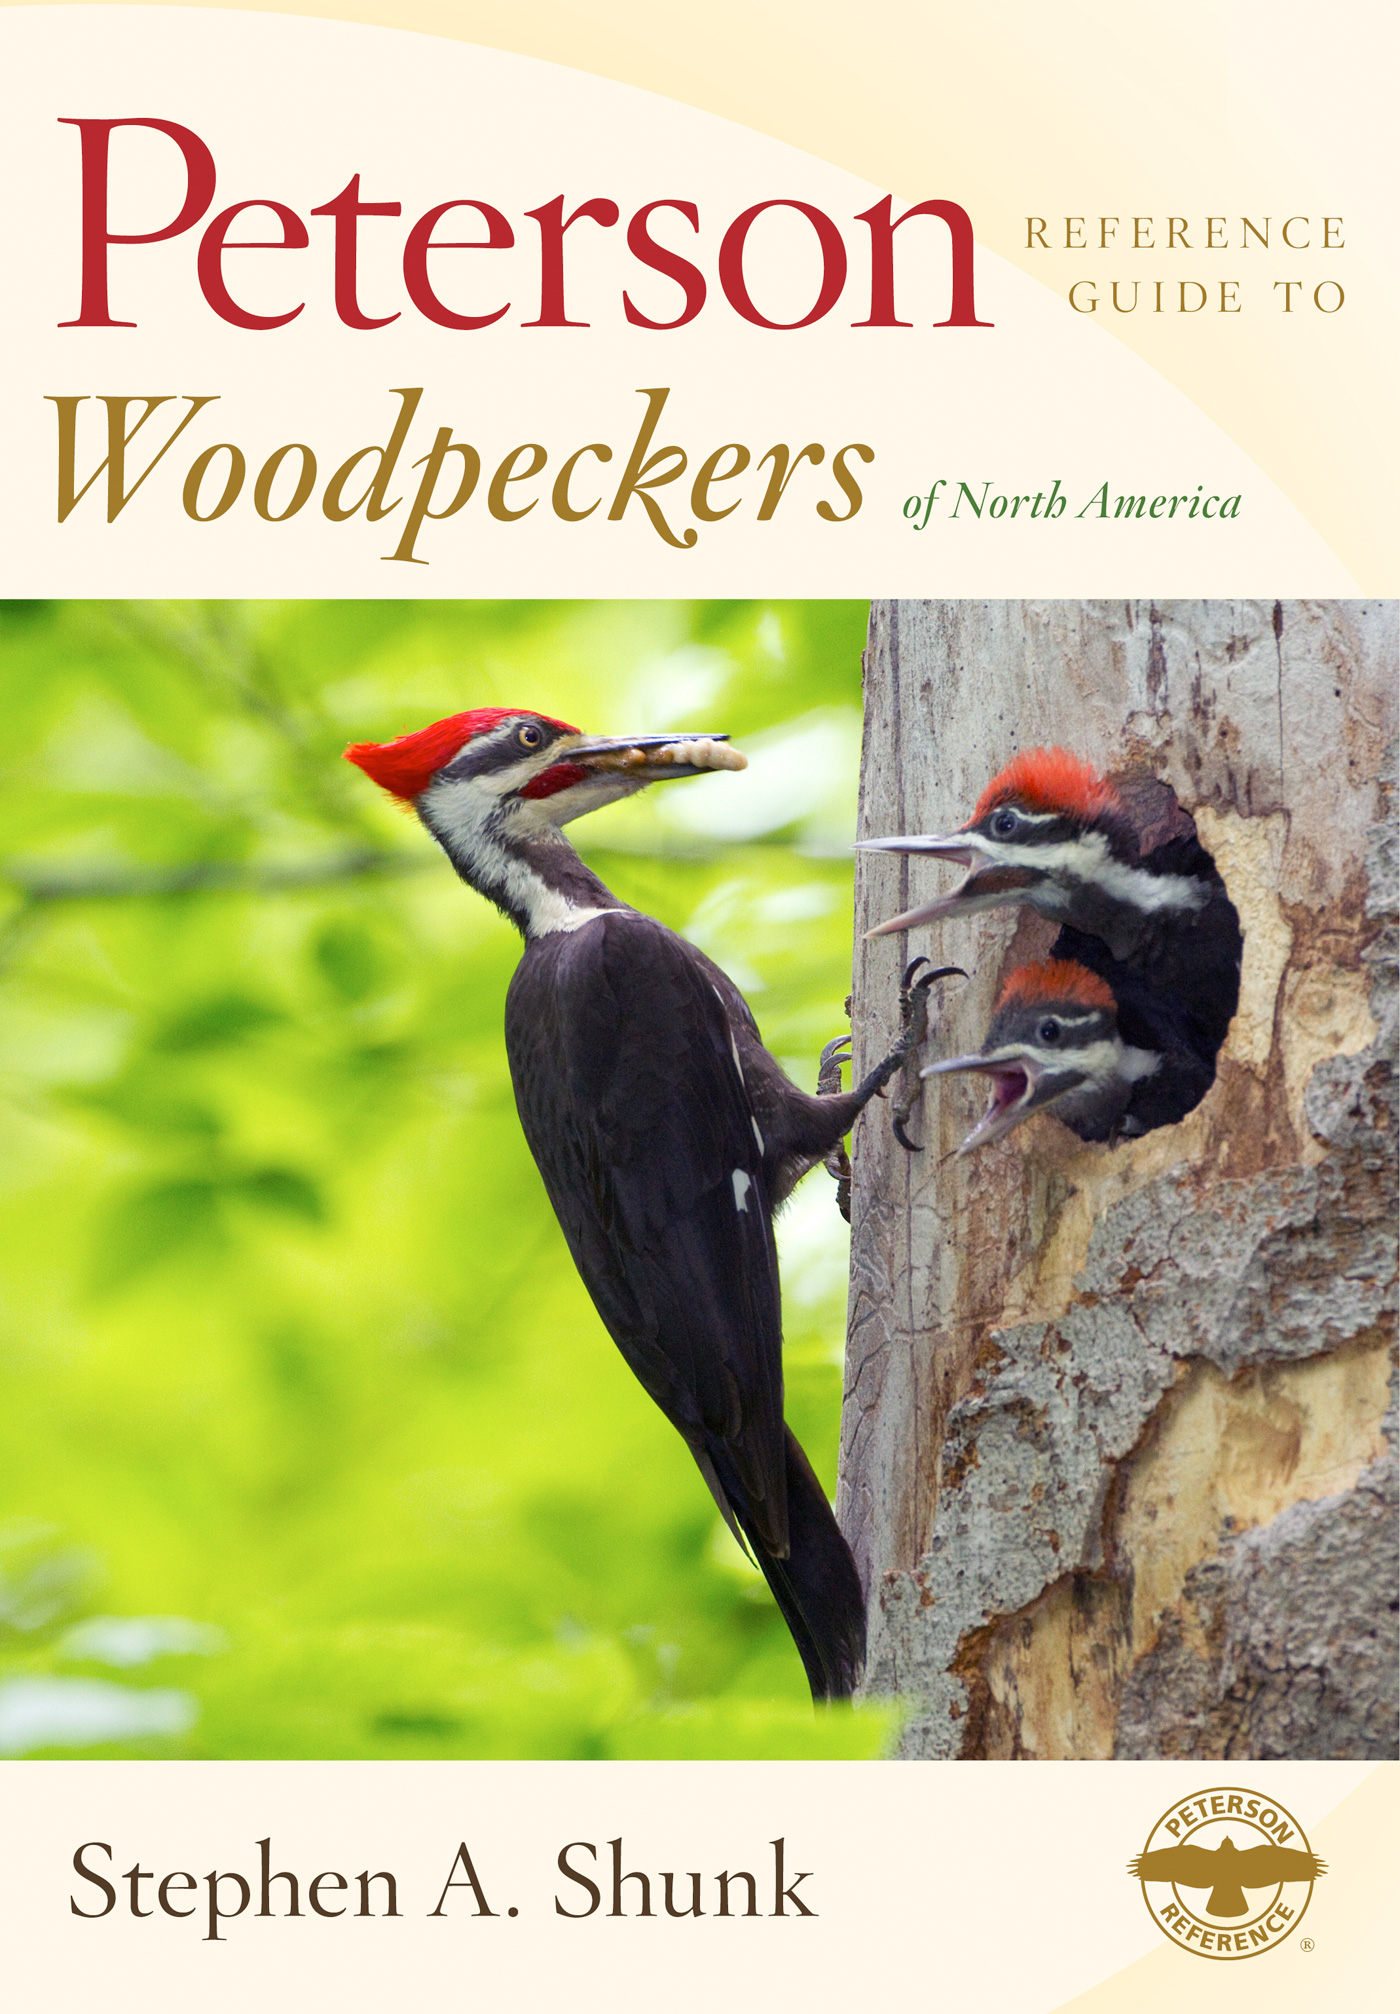 Peterson Reference Guide to Woodpeckers of North America-9780618739950